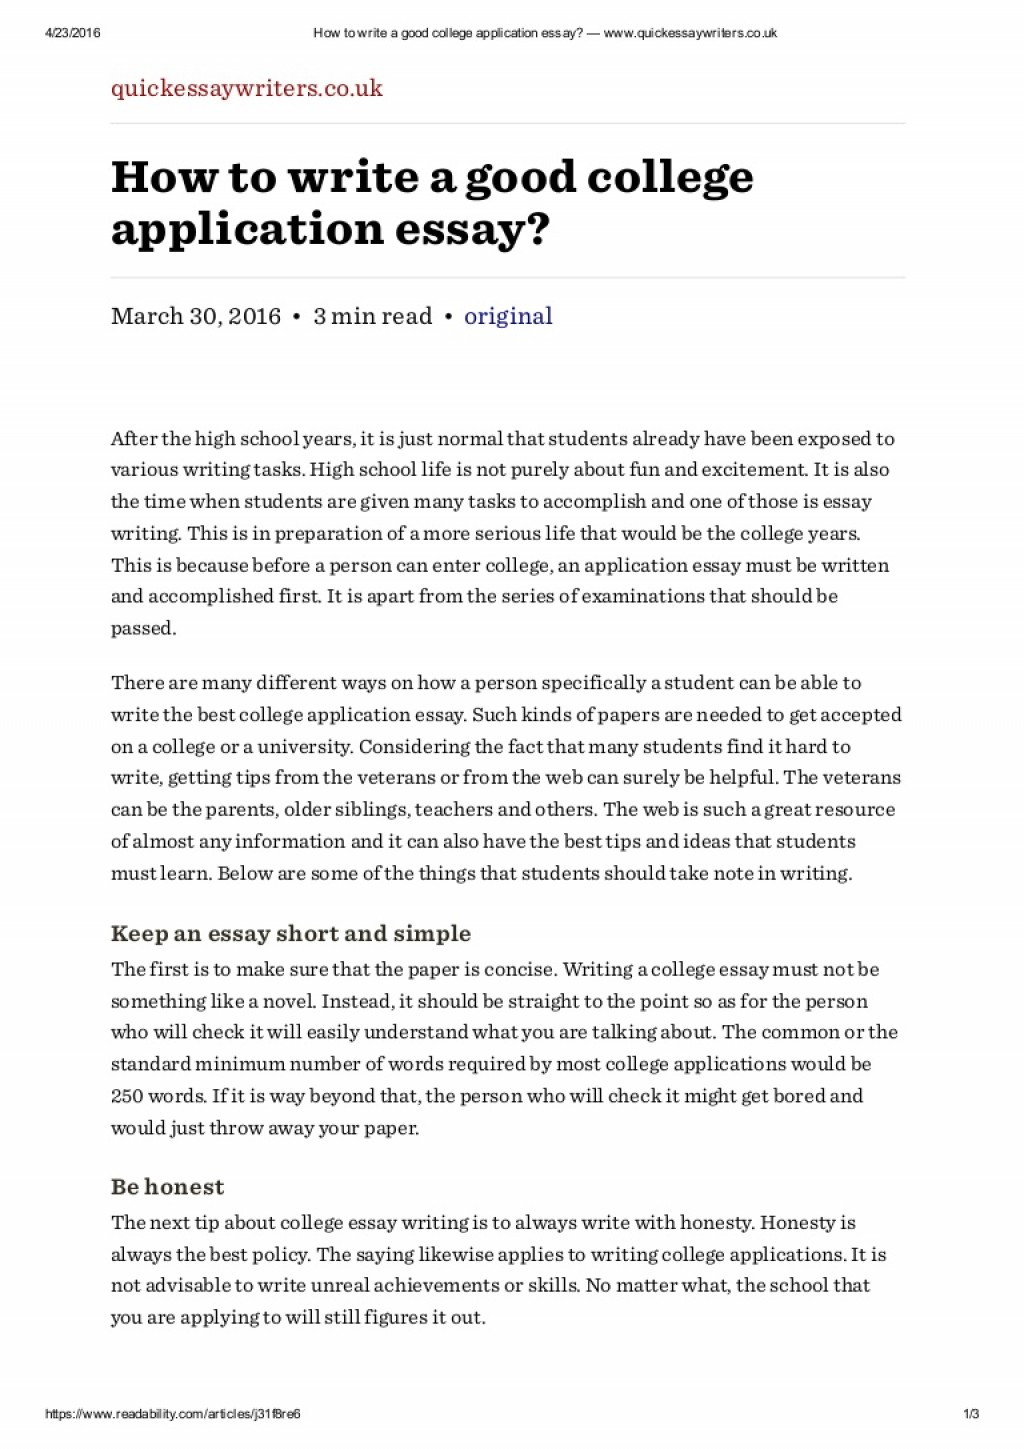 003 Essay Example College Length What To Write In Application Letter How Start App Tips Examples Writing Samples Topics Format Outline Ideas Stirring Common Personal Board Large